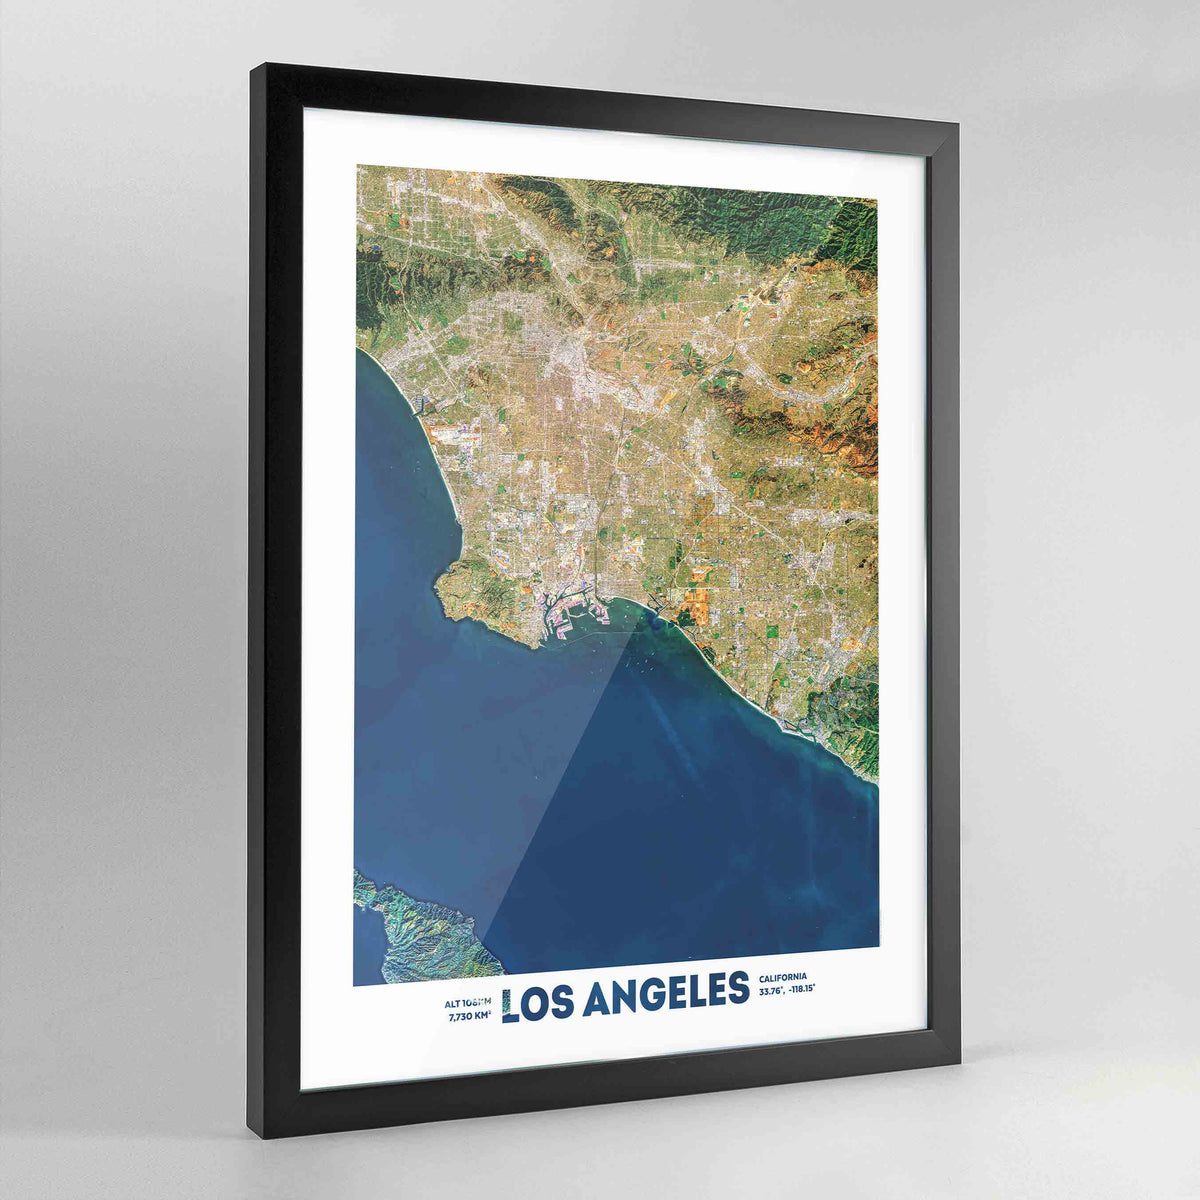 Los Angeles - Fine Art